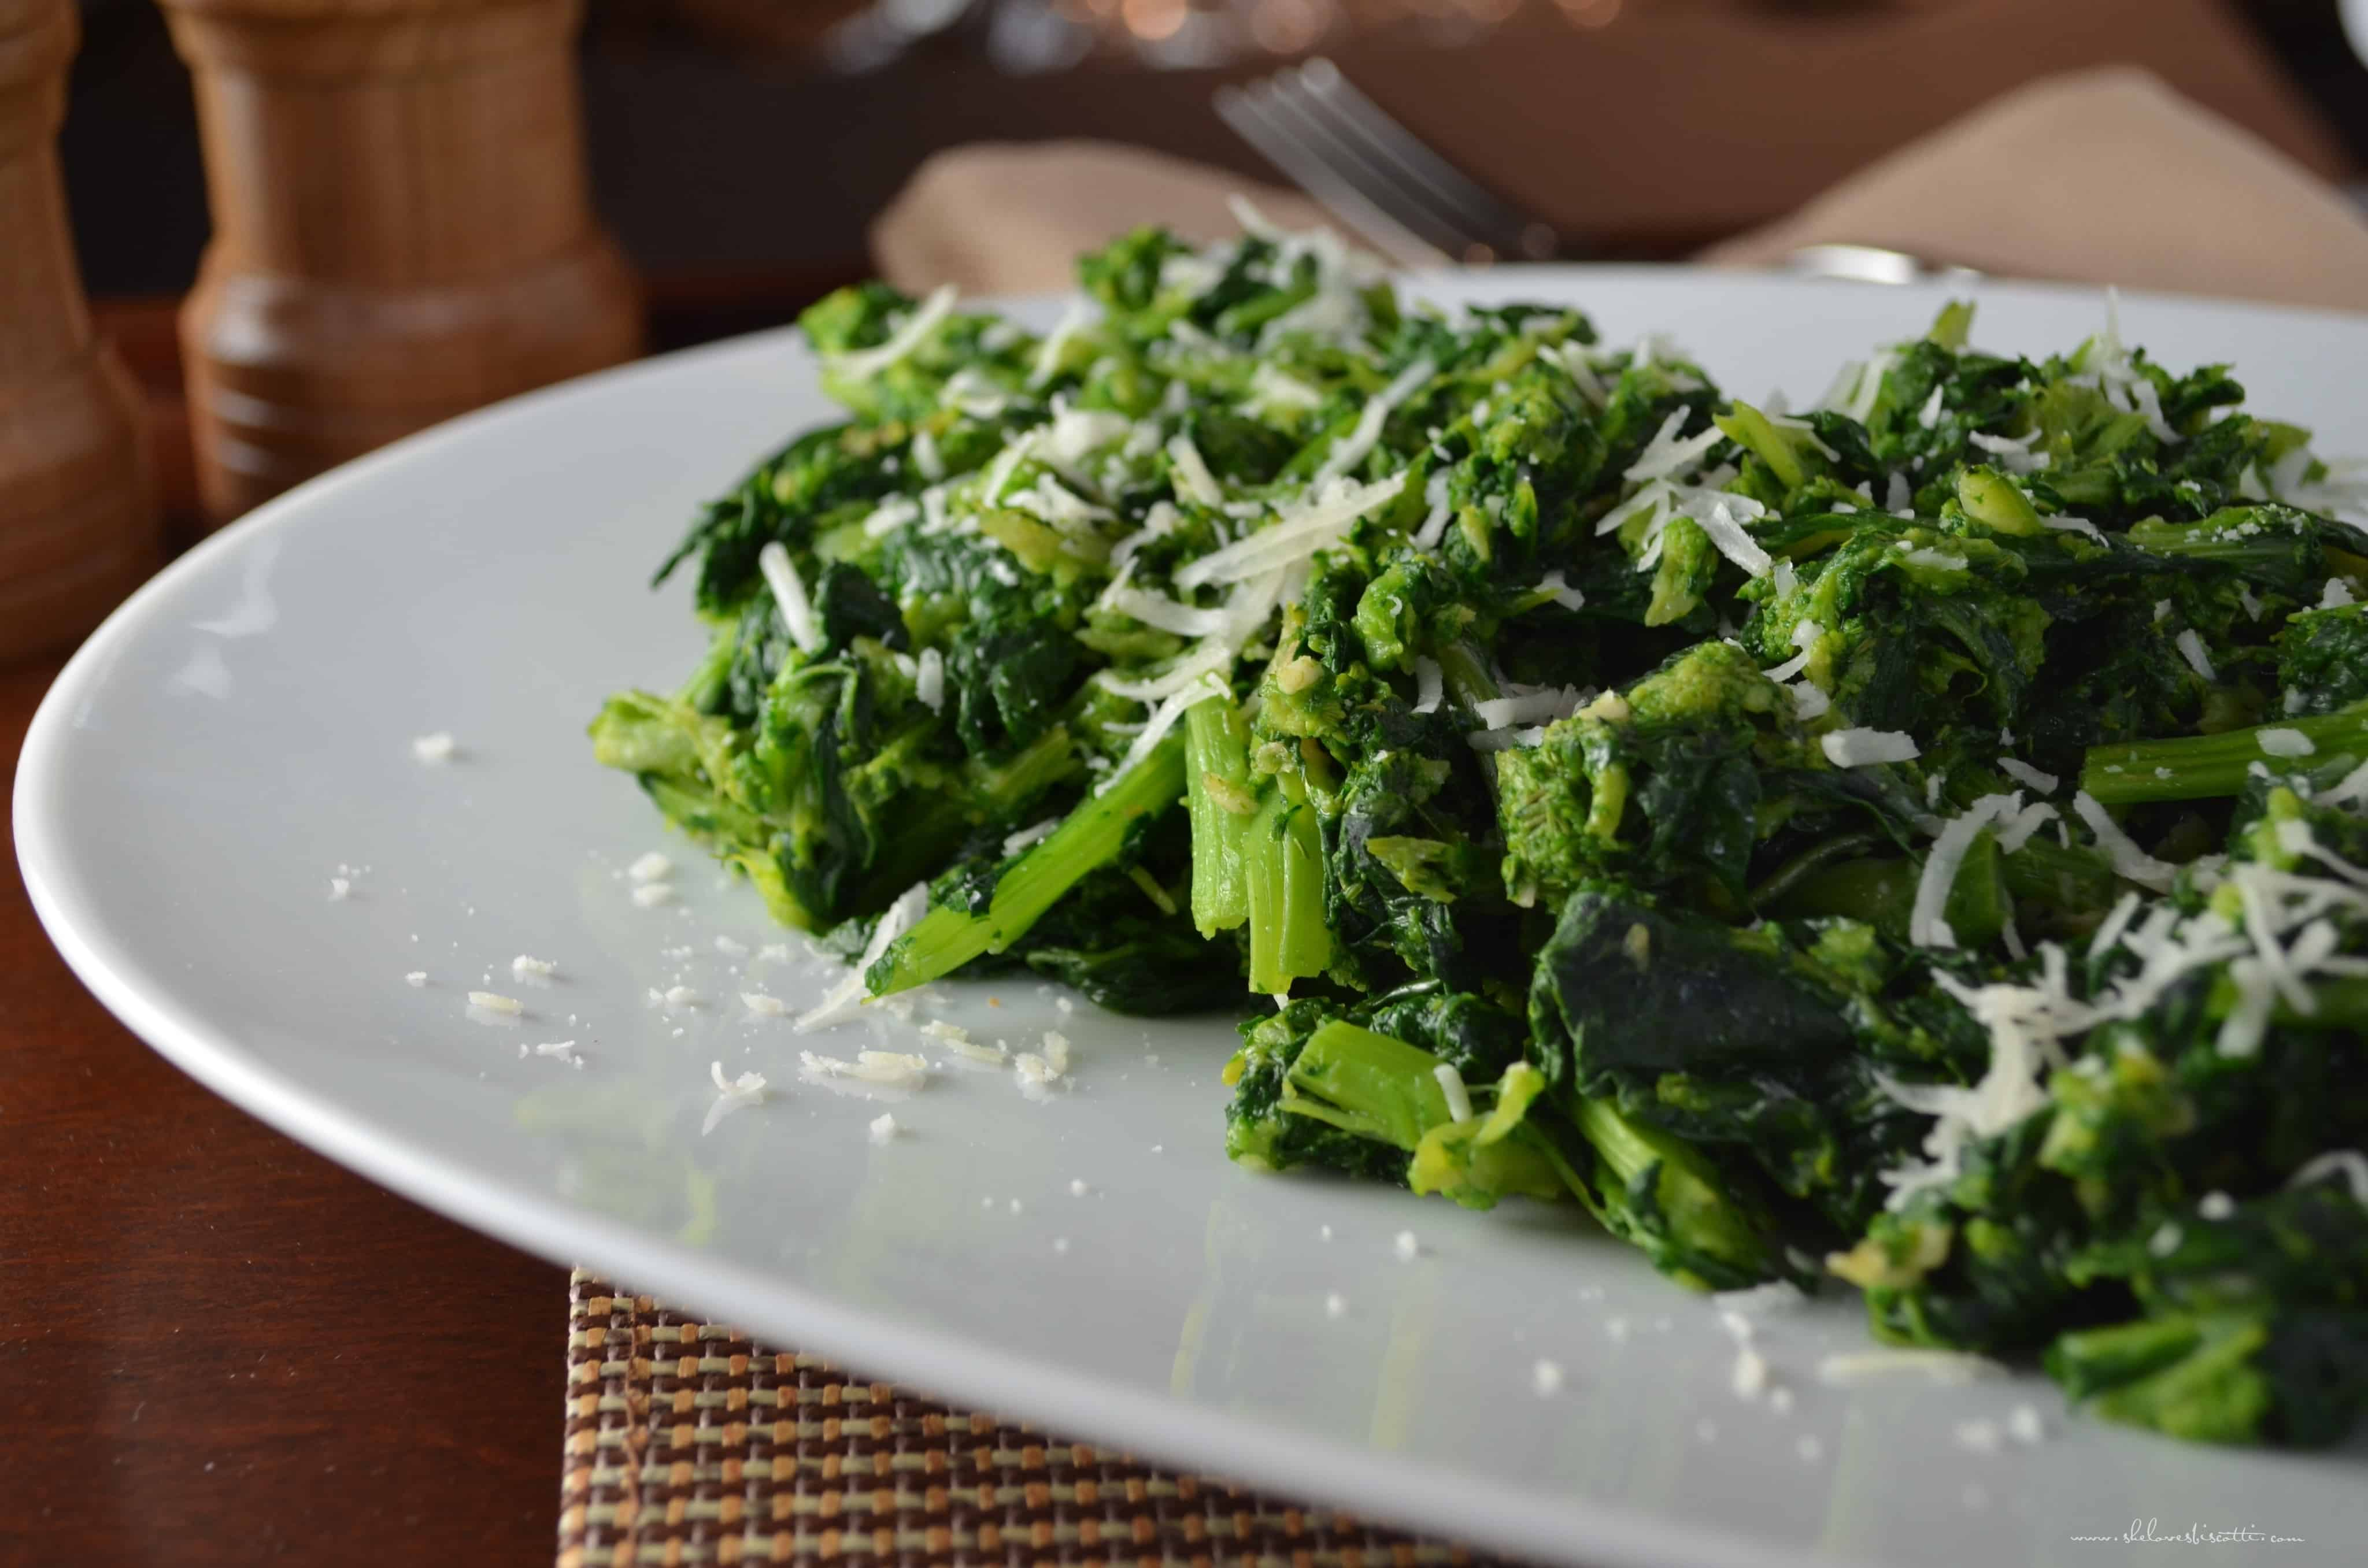 Italian-Style Garlicky Broccoli Rabe served on a large white platter.